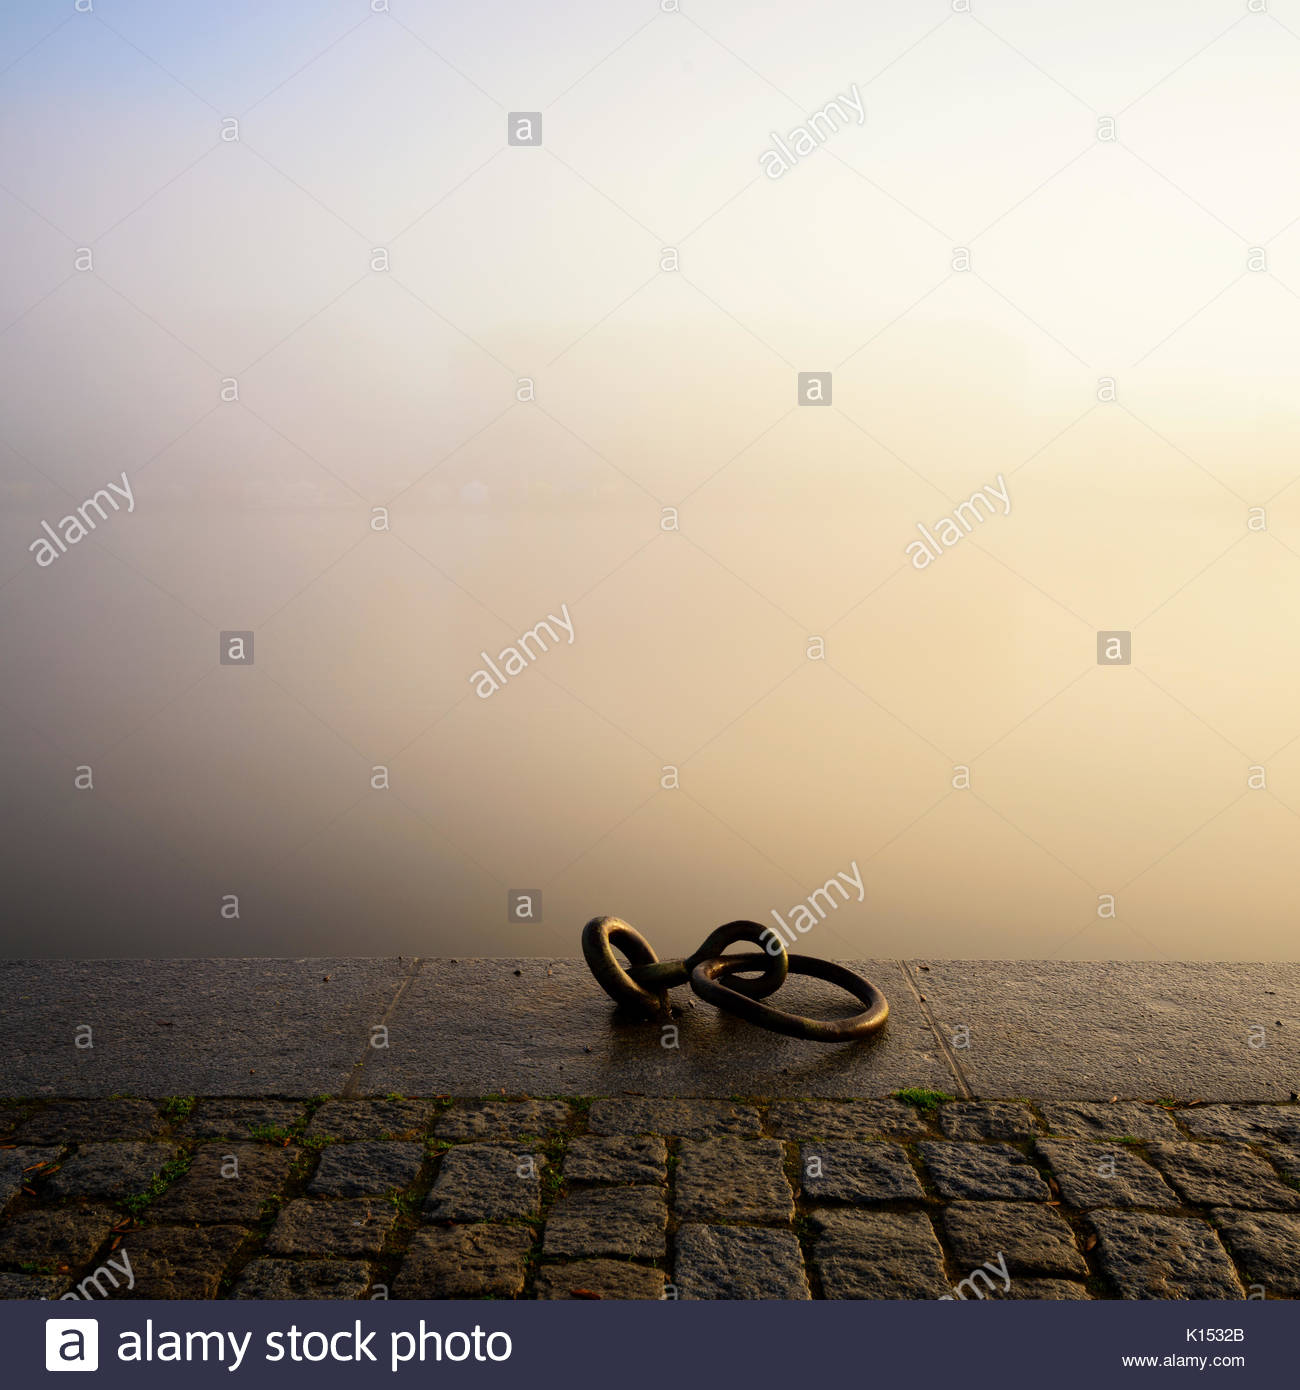 Riverbank near Vltava river during foggy morning, Prague, Czech republic - Stock Image